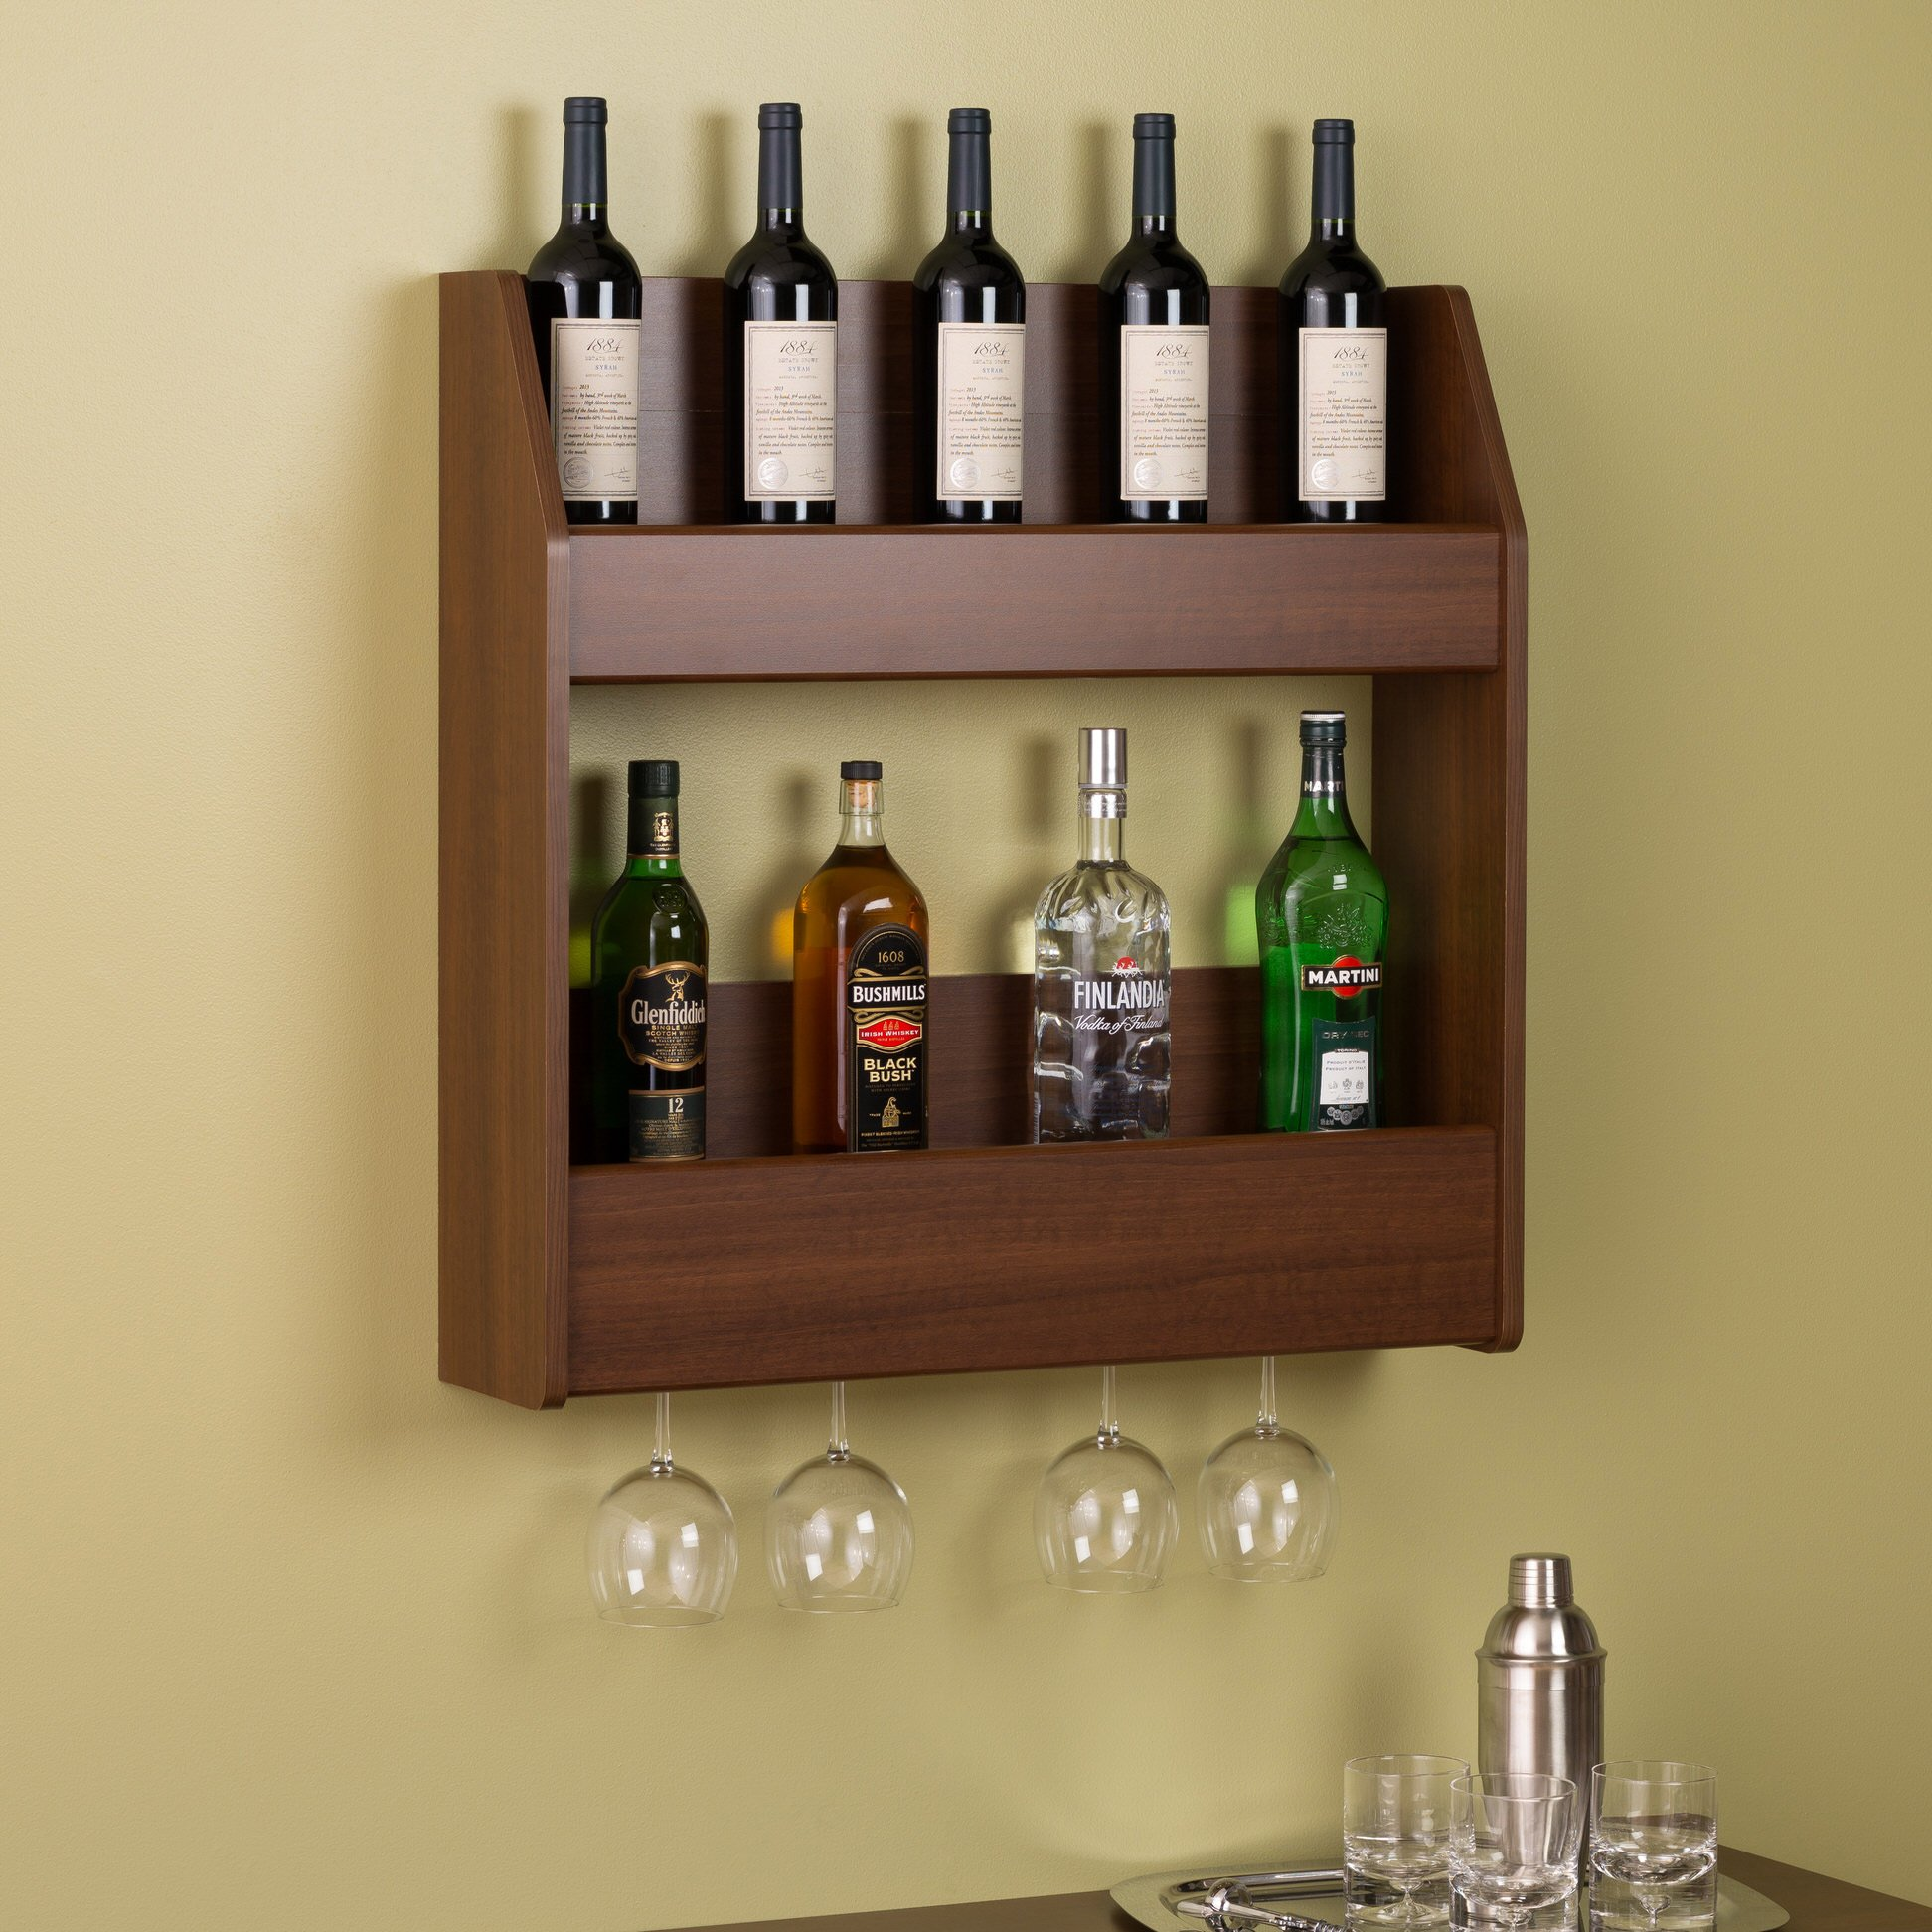 342203271658769557 likewise 2 Tier Floating Wine and Liquor Rack by Prepac besides 25 Beautiful Corner Cabi  Ideas Home furthermore 180975345118 moreover Feature Friday Vintage Ladders. on liquor display bar shelves